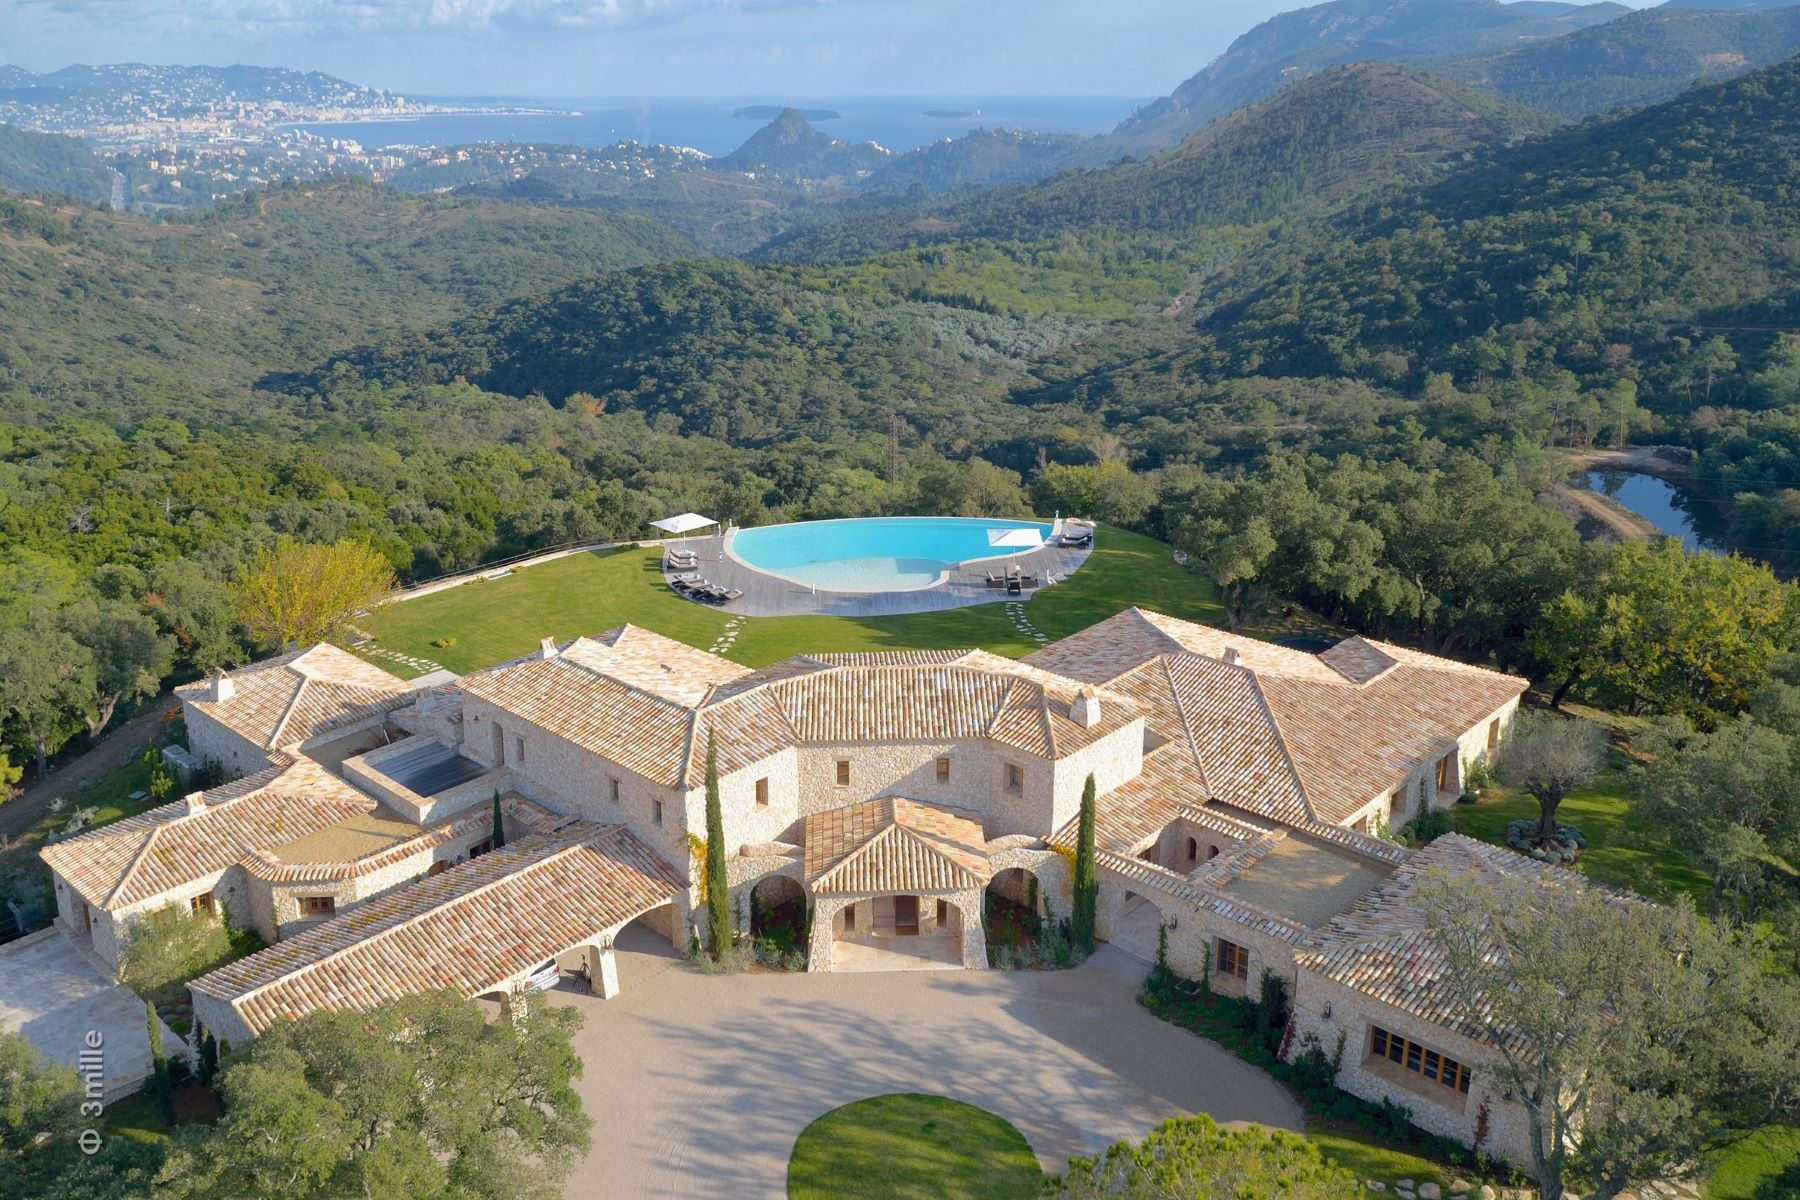 Einfamilienhaus für Verkauf beim Magnificent provencal domain with views over the bay of Cannes - luxury estate Les Adrets De L Esterel, Provence-Alpes-Cote D'Azur 83600 Frankreich